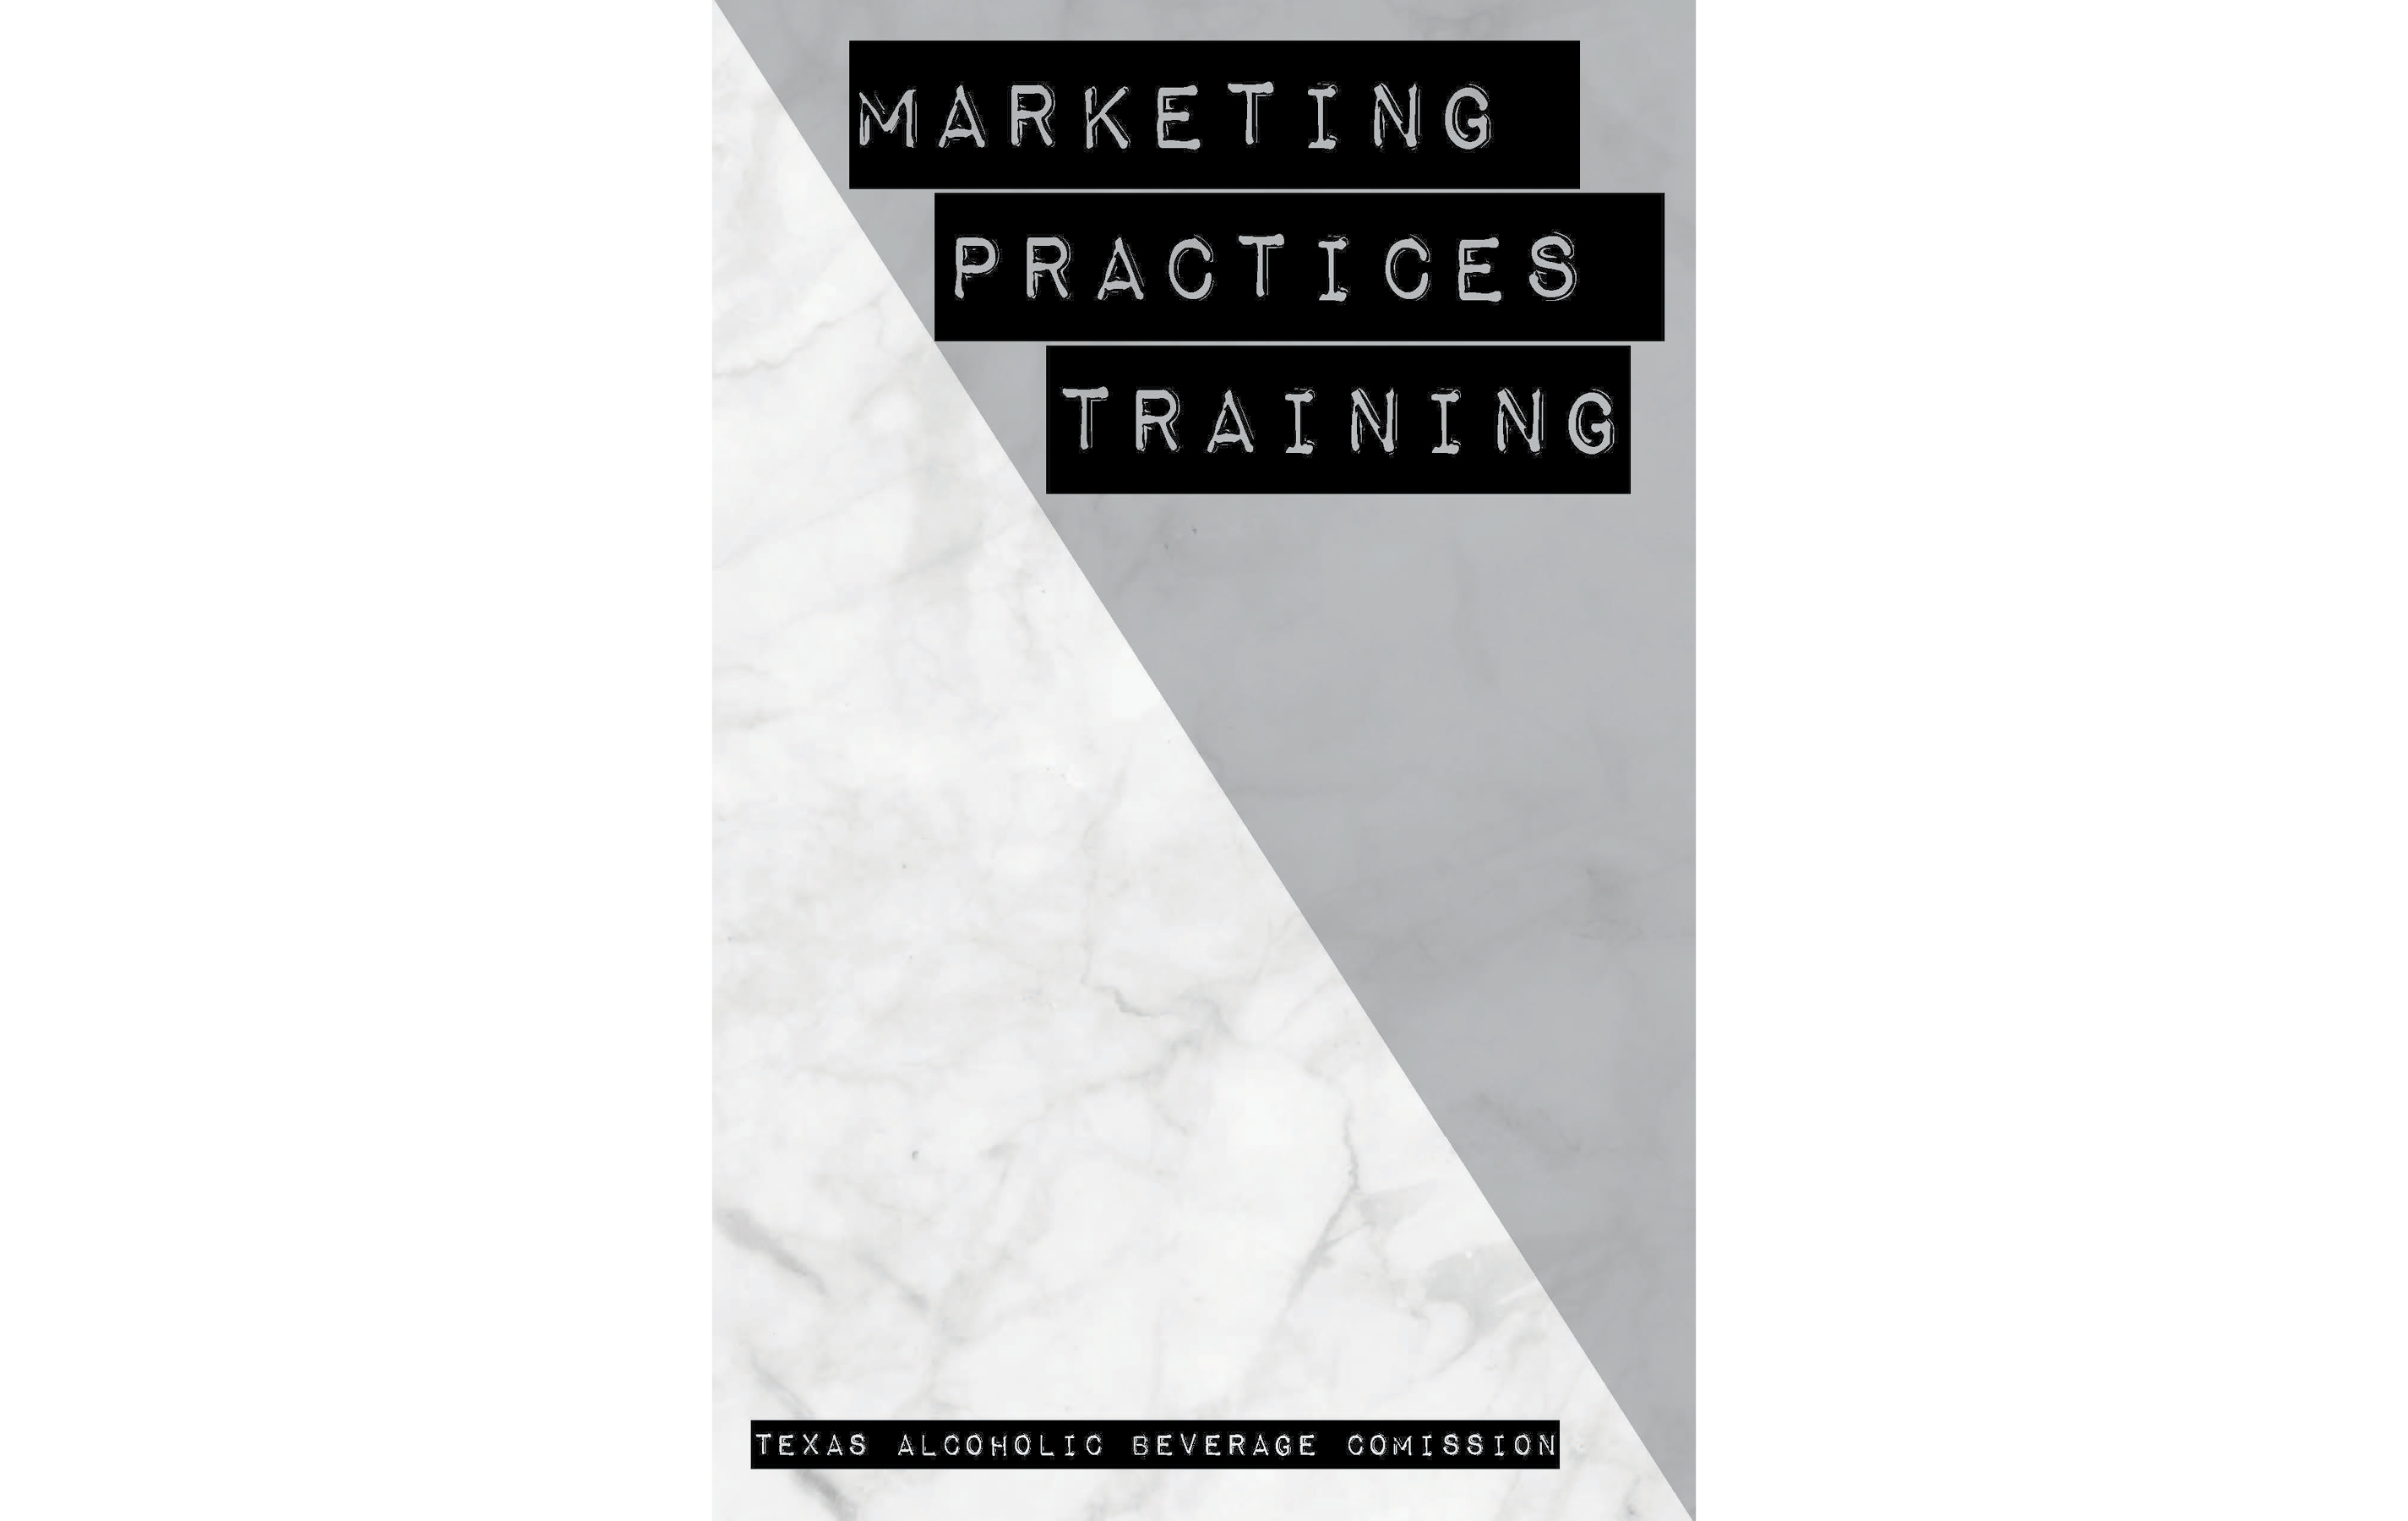 Marketing Practices Training Notebook